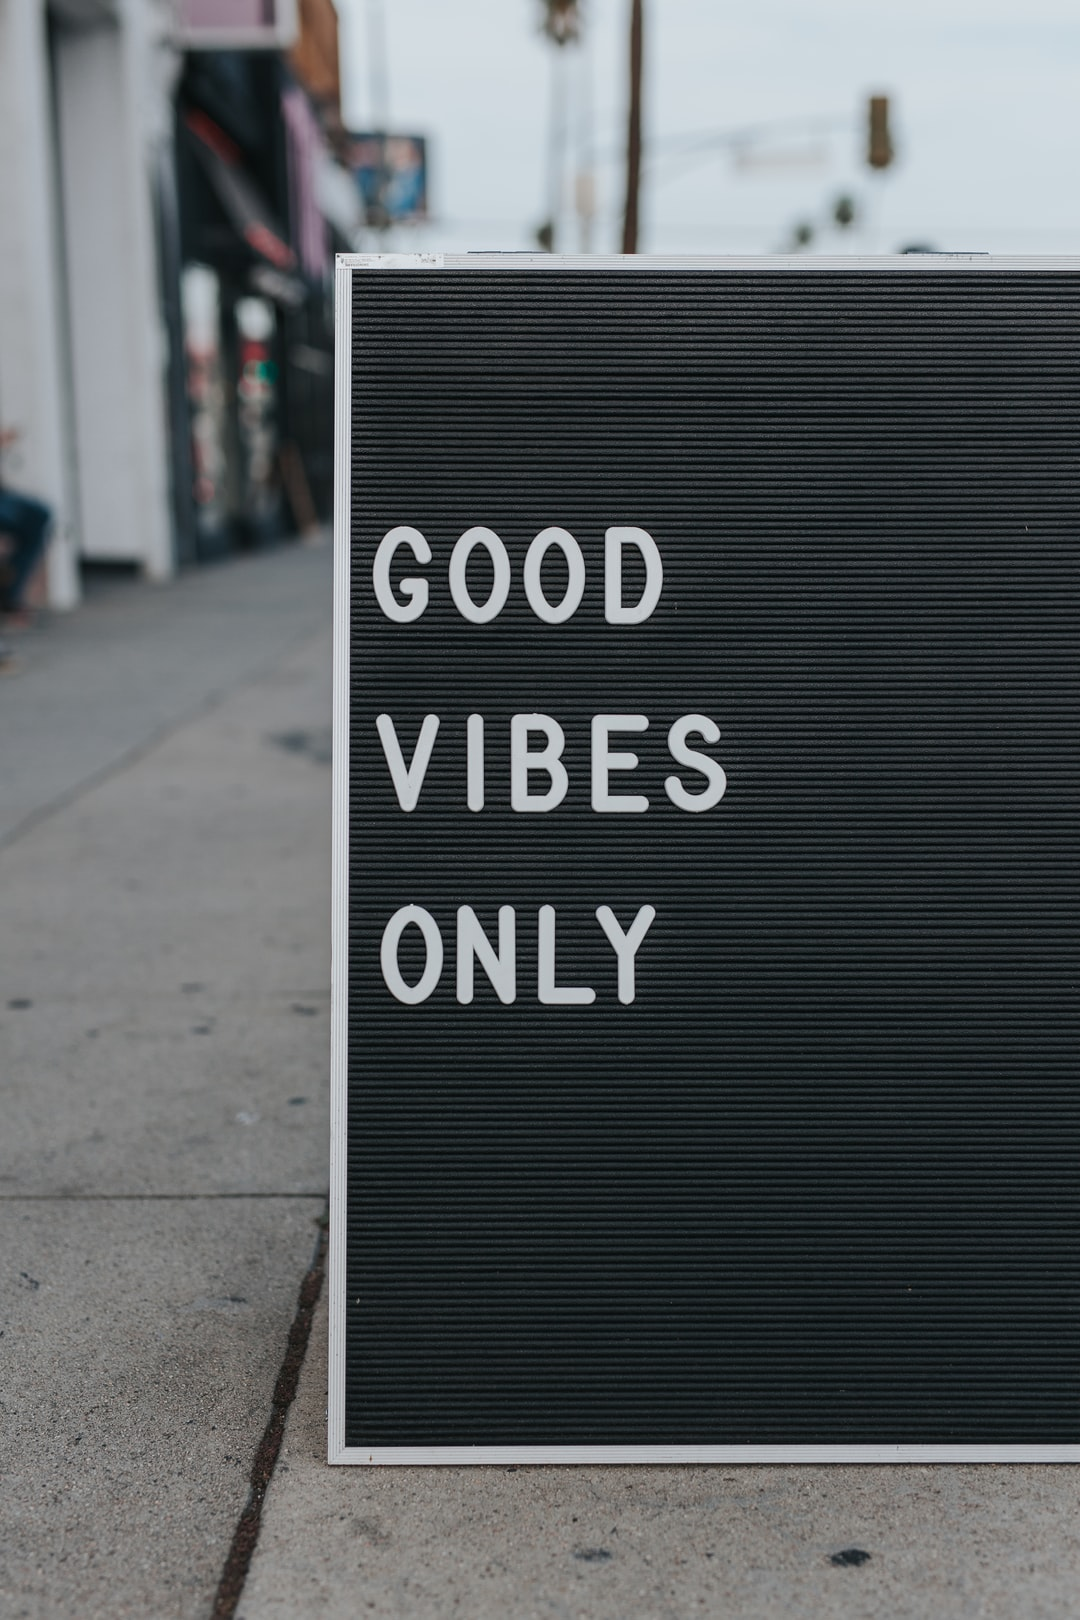 500 Good Vibes Only Pictures Hd Download Free Images On Unsplash